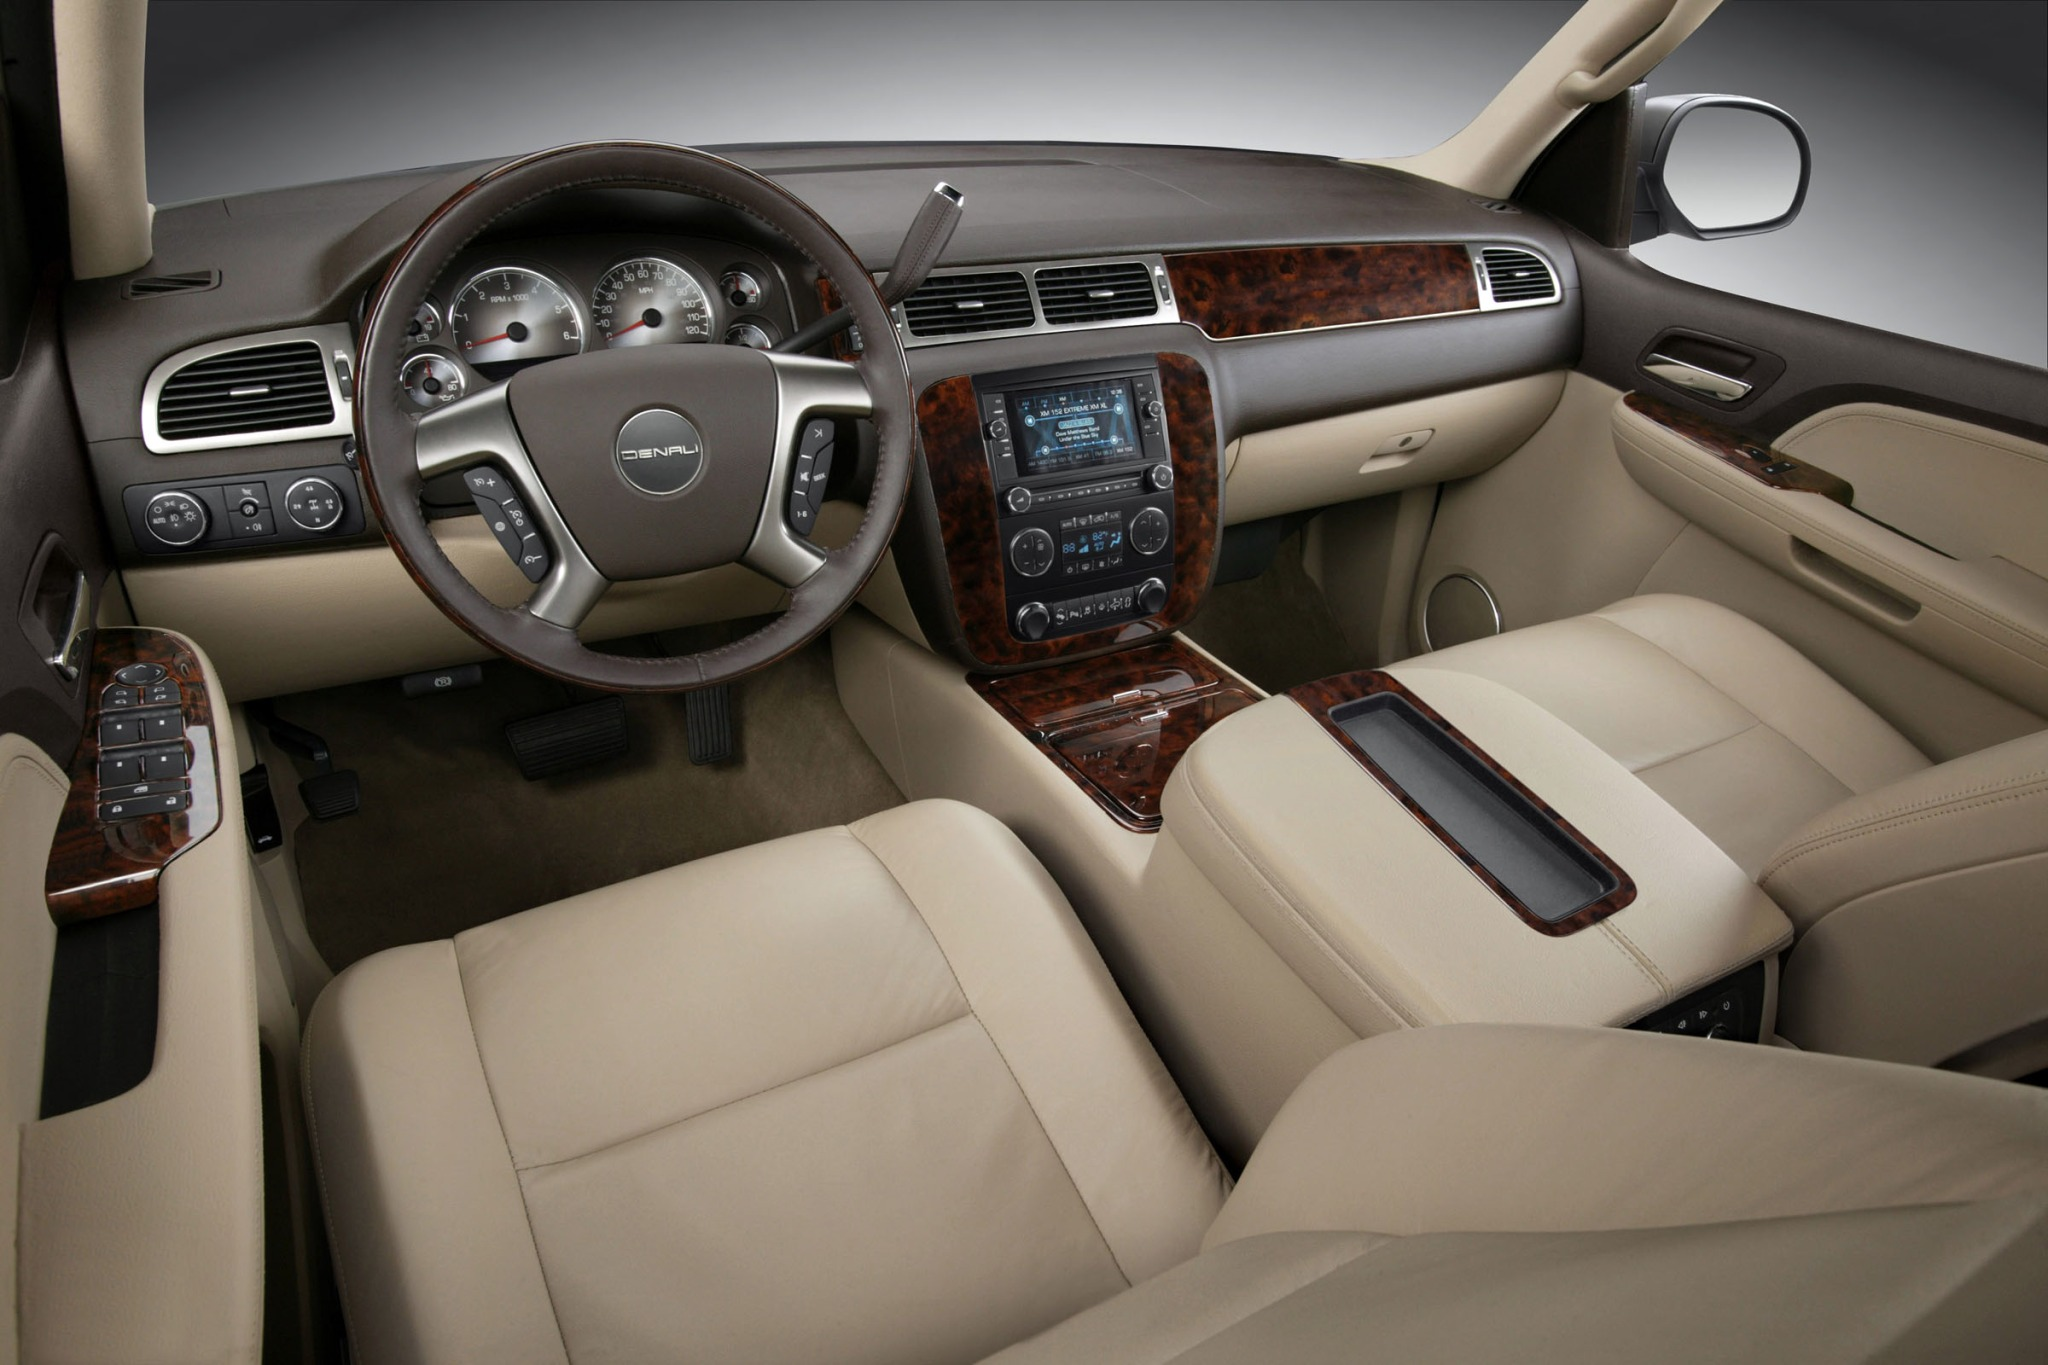 2013 GMC Yukon XL SLT 150 interior #7